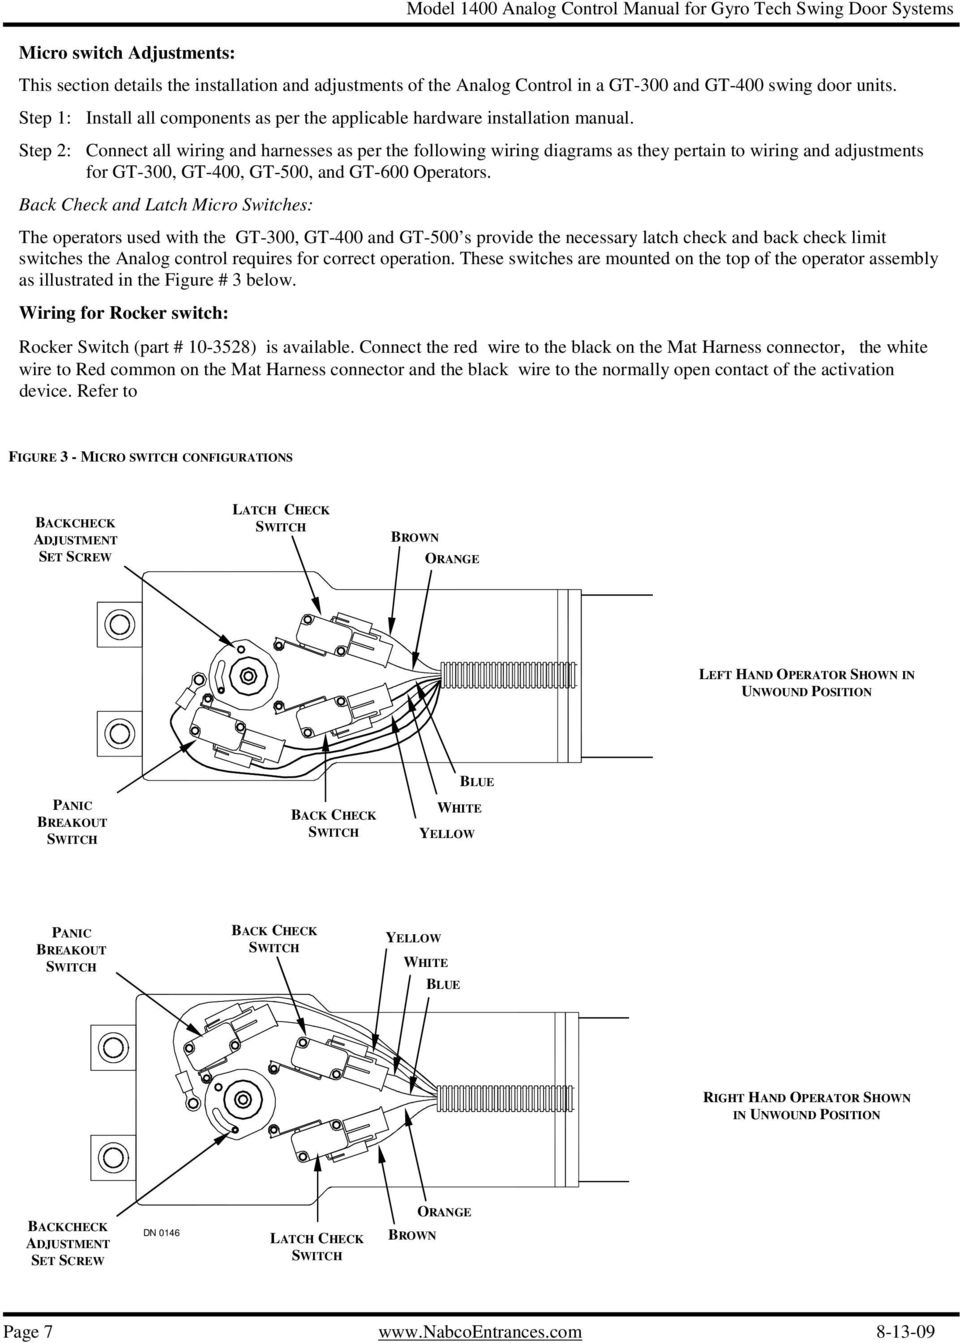 analog control wiring adjustment manual for gyro tech swing door step 2 connect all wiring and harnesses as per the following wiring diagrams as they